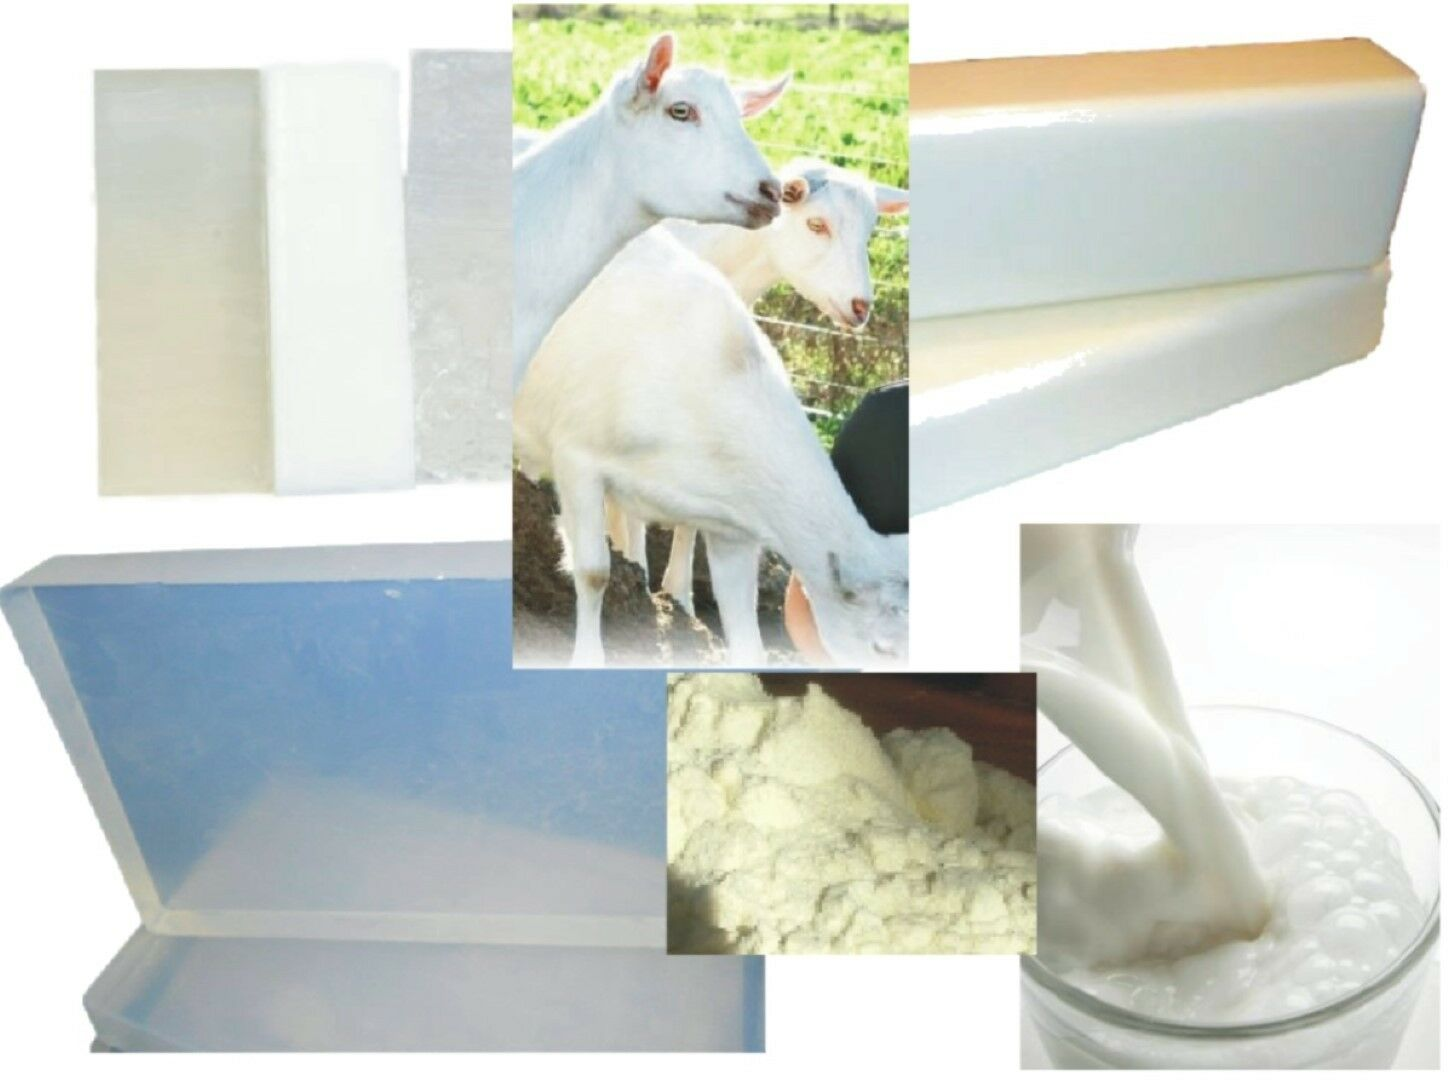 1 kg GOATS MILK MELT and POUR SOAP BASE MP + FREE eBook, Make 10-20 Bars